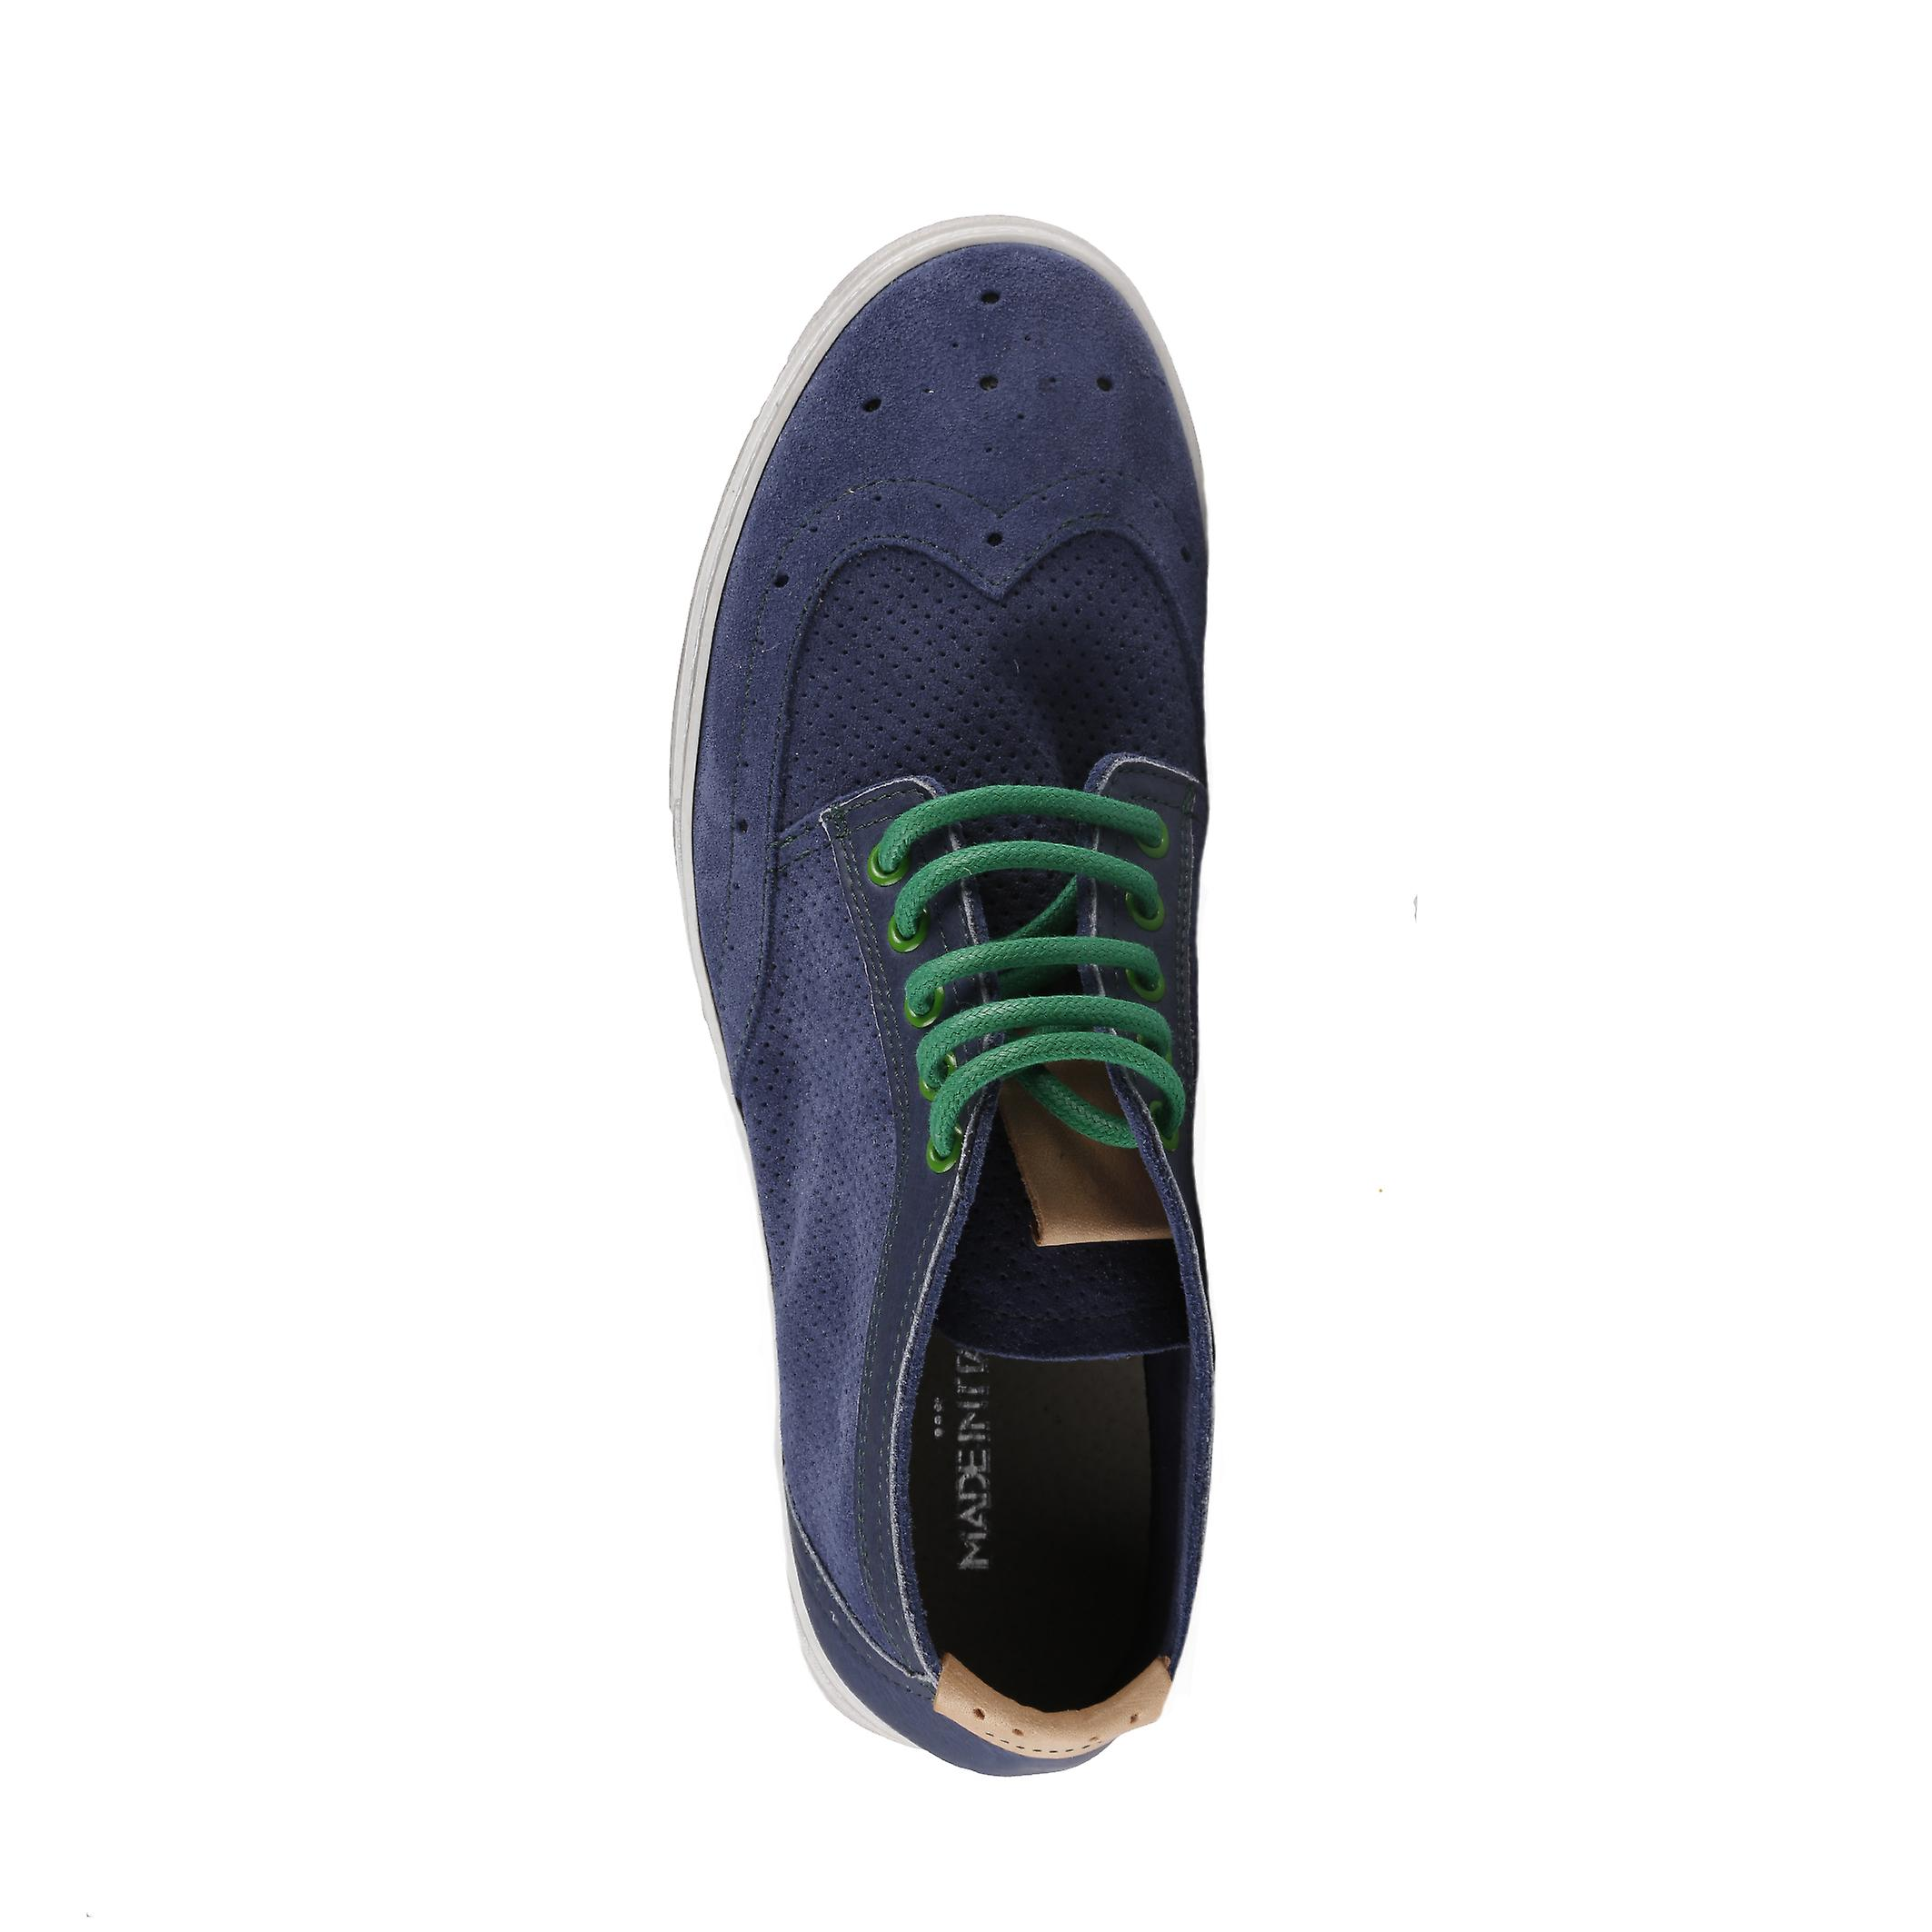 Lace Italia Made in GIOELE Shoe Up Men's IvTFqwTSW4